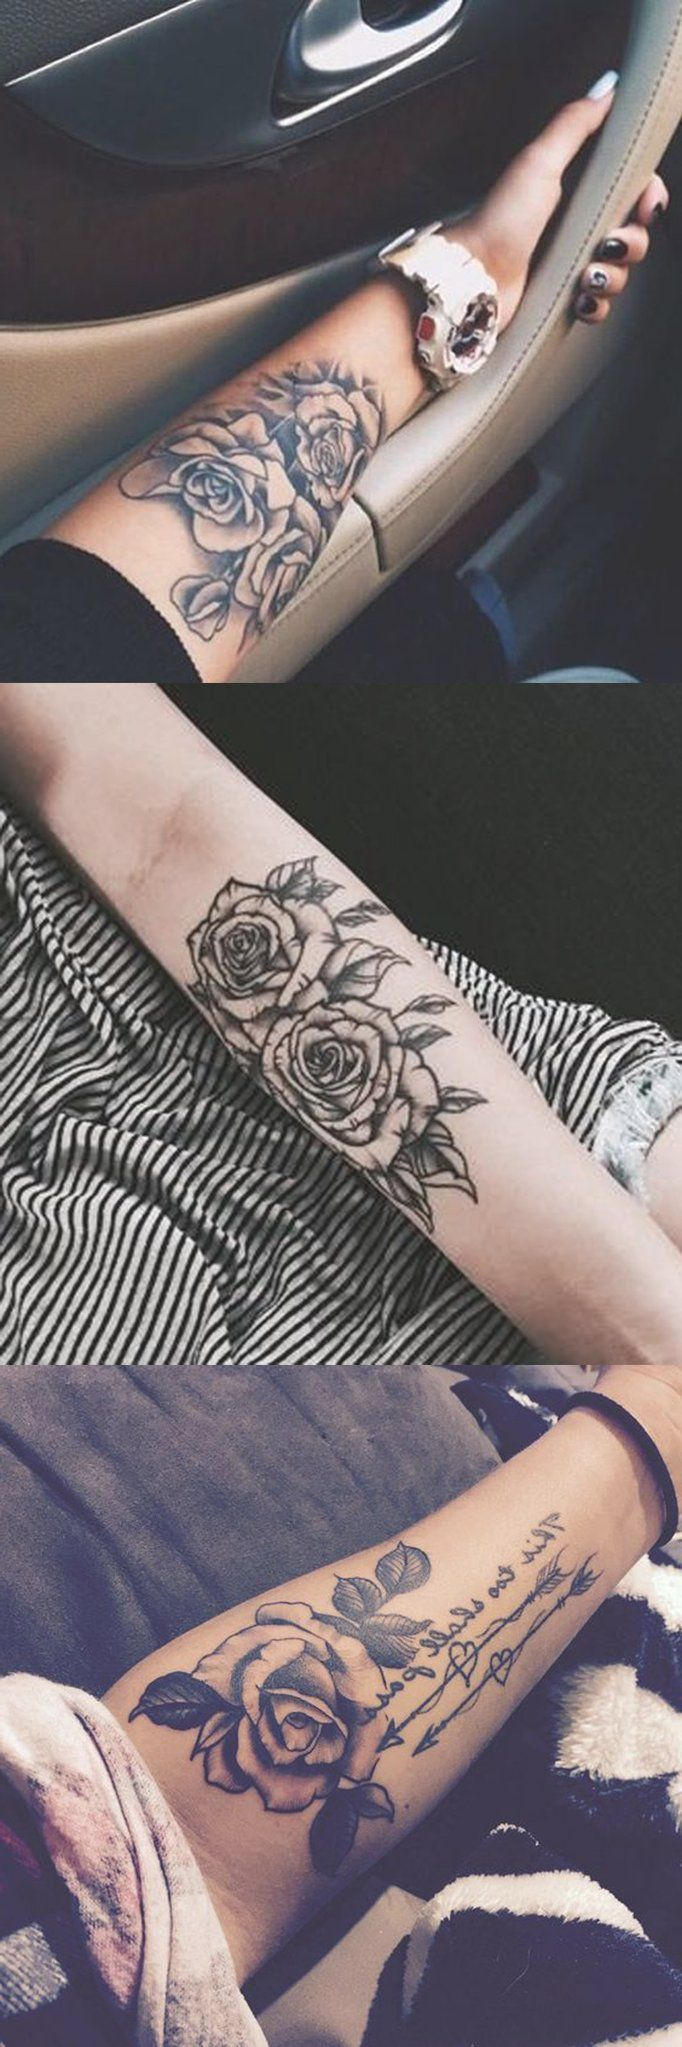 ada262a49 Black Rose Forearm Tattoo Ideas - Girly Realistic Floral Flower Arm Tat - rose  arm sleeve tattoo Edit rose arm sleeve tattoo tatuaje de la manga del brazo  ...